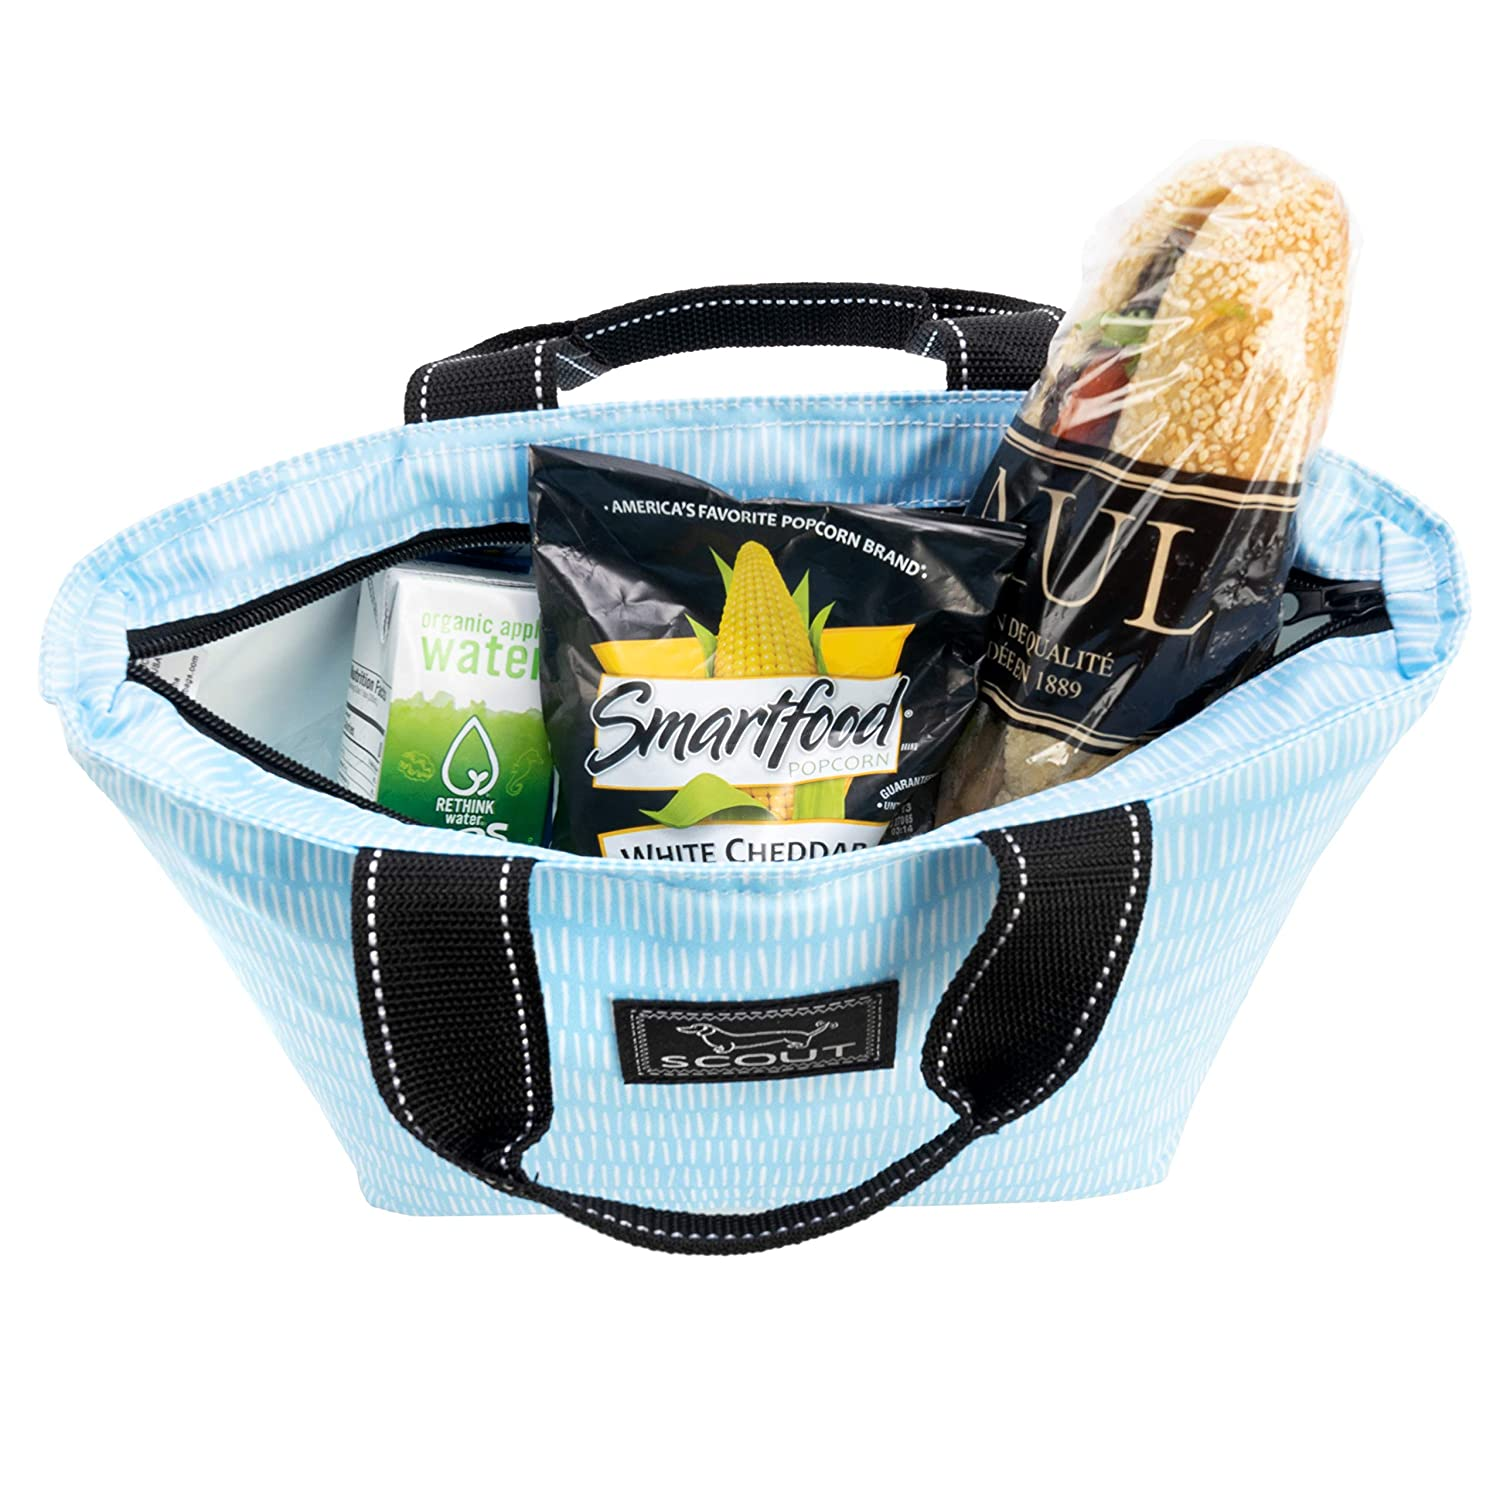 Water Resistant Zips Closed Heat-sealed SCOUT Nooner Insulated Lunch Box or Soft Cooler With Pockets PVC-free Liner